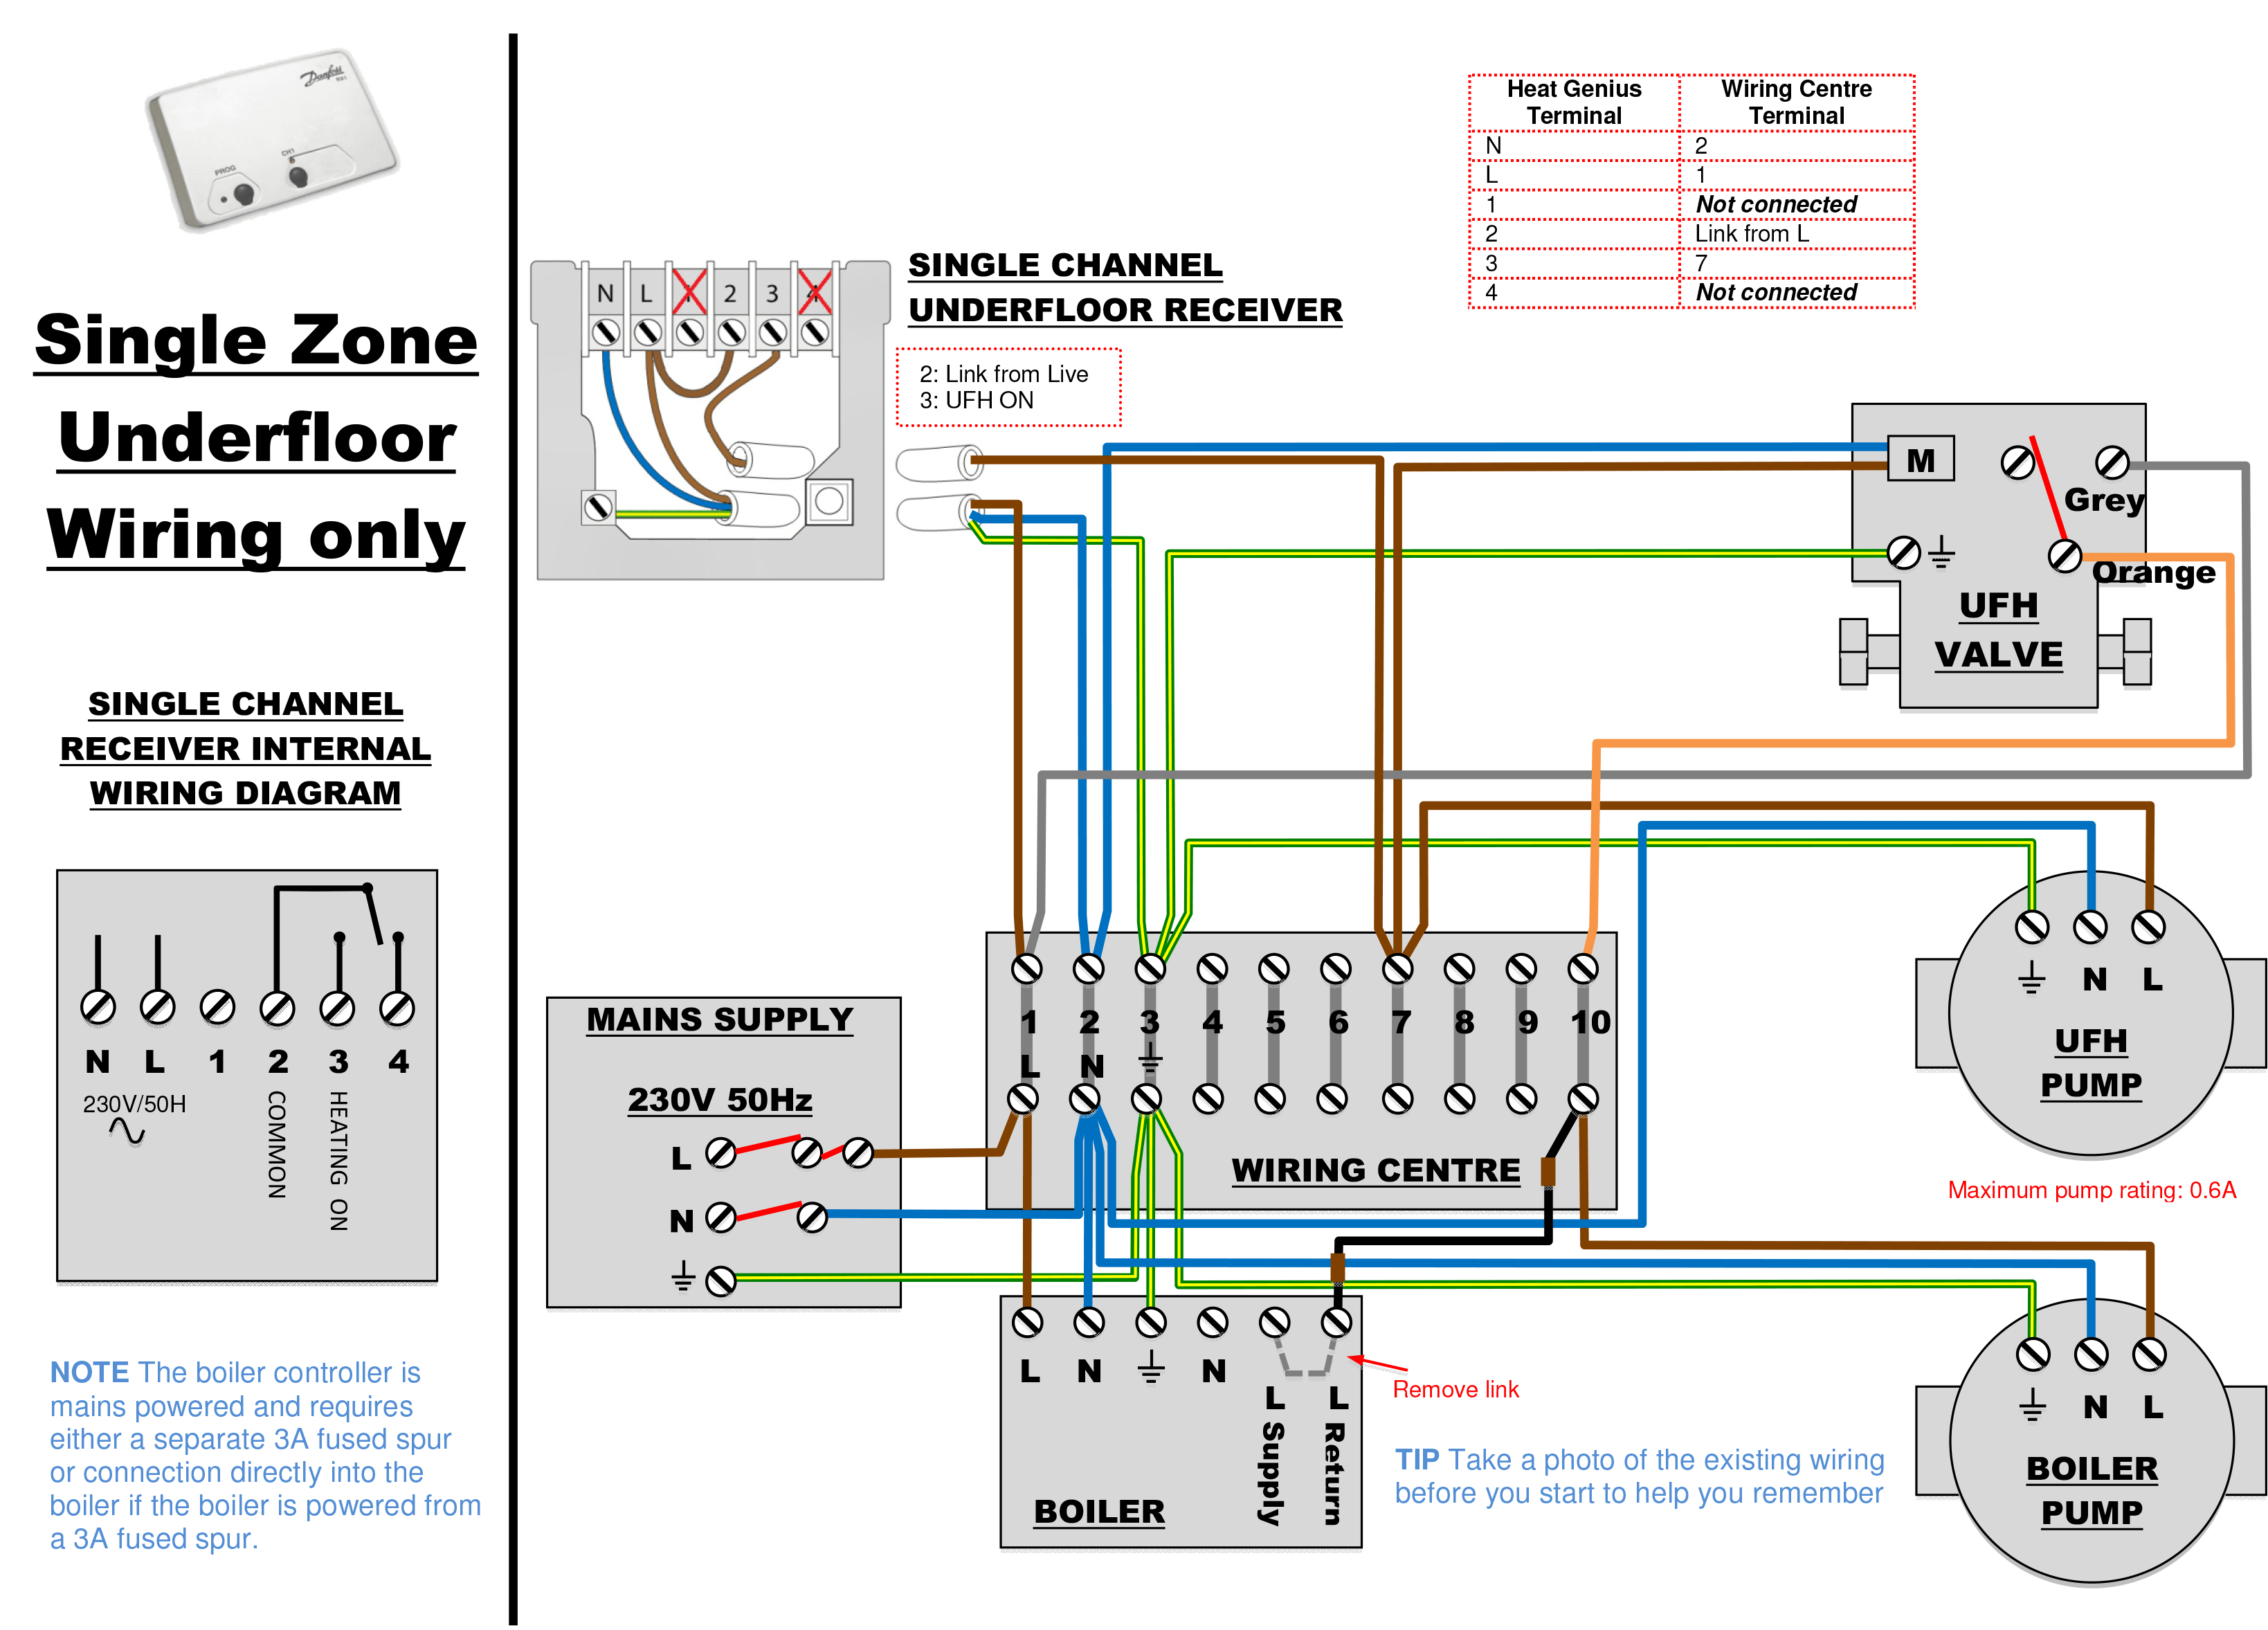 [ZSVE_7041]  Unique Wiring Diagrams S Plan Heating Systems #diagram #diagramsample  #diagramtemplate | Underfloor heating systems, Central heating system,  Thermostat wiring | In Floor Heat Wiring Diagram |  | Pinterest